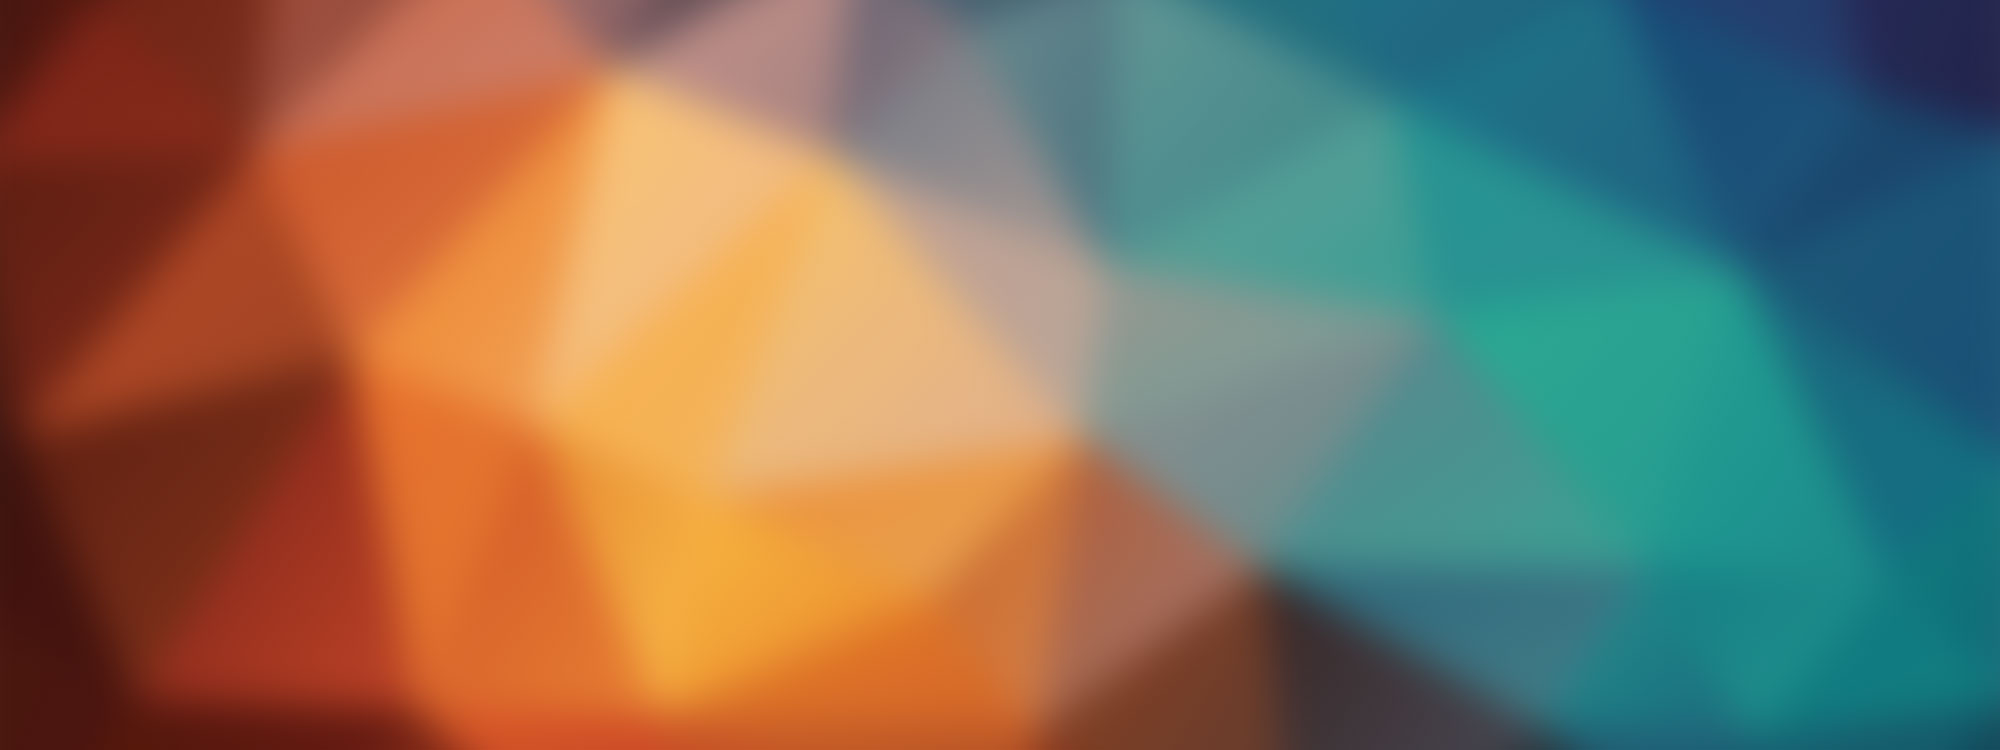 Blur_Background_November_2017_03